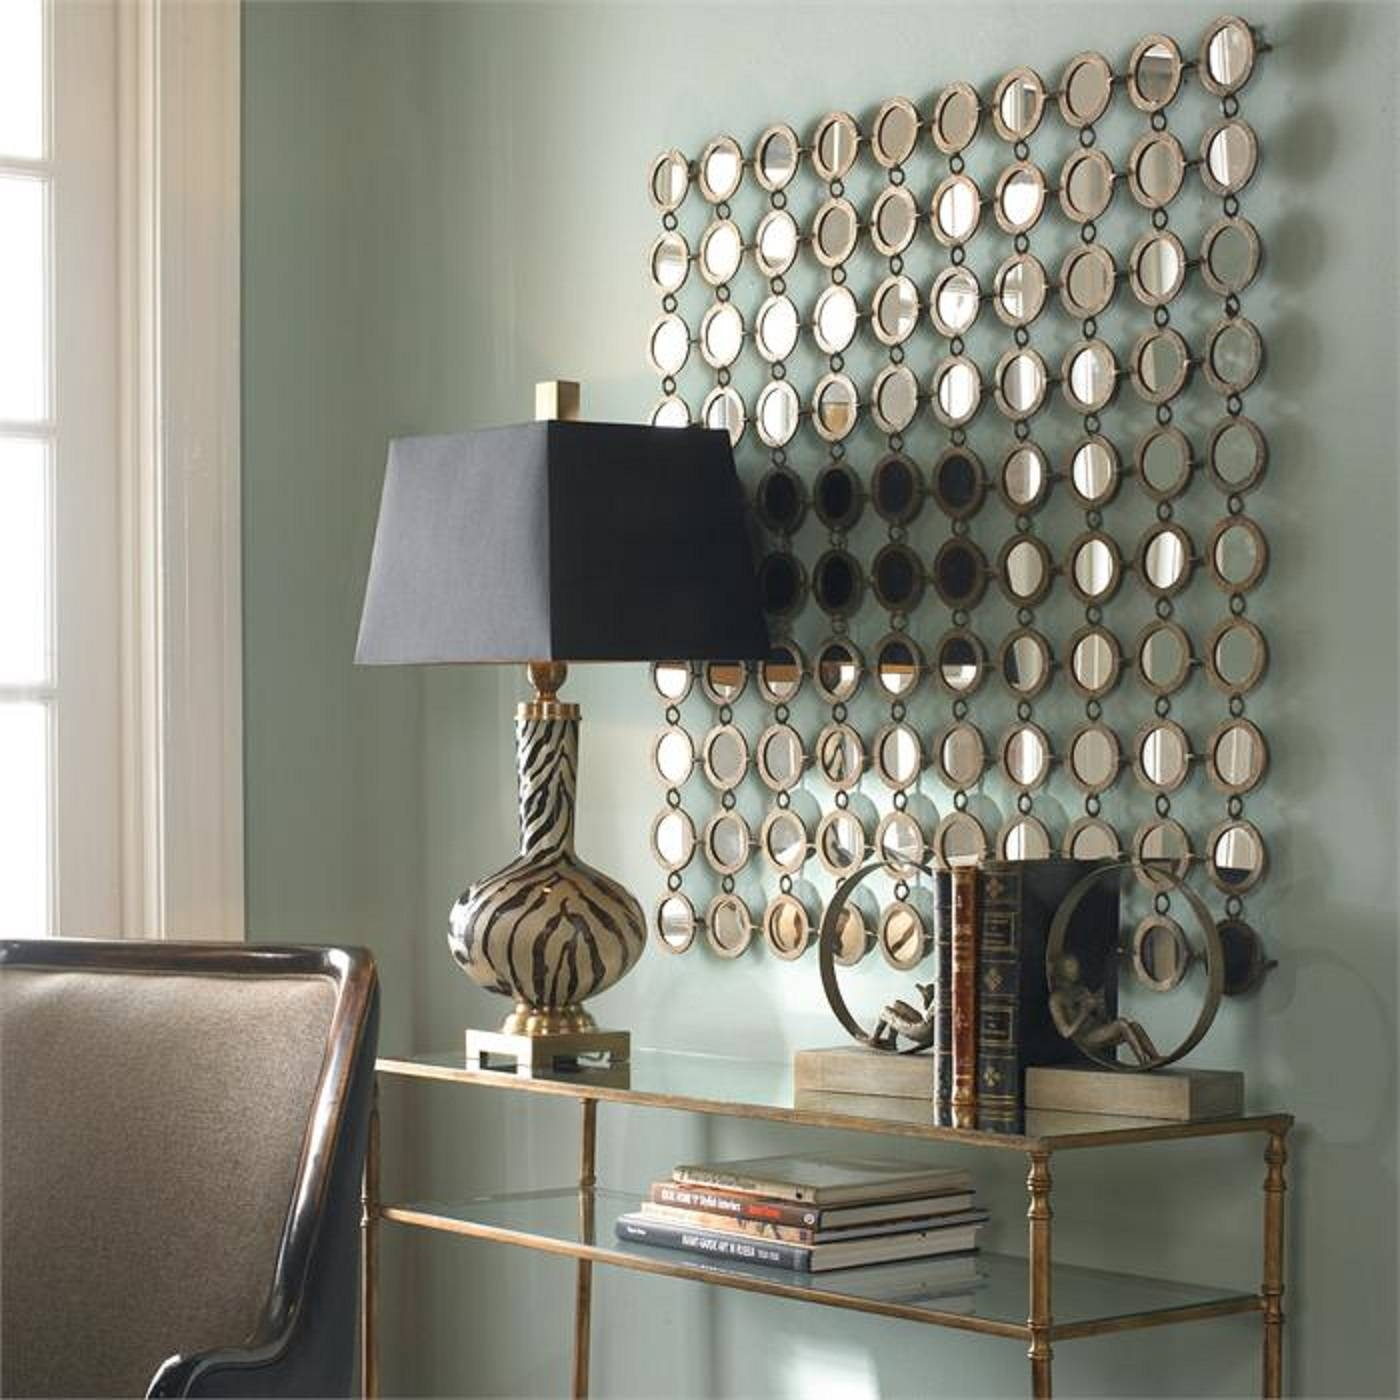 Deluxe Decorative Mirror On Mirrored Wall Decor Mirrored Wall With Regard To Most Recent Metal Wall Art Mirrors (View 5 of 20)